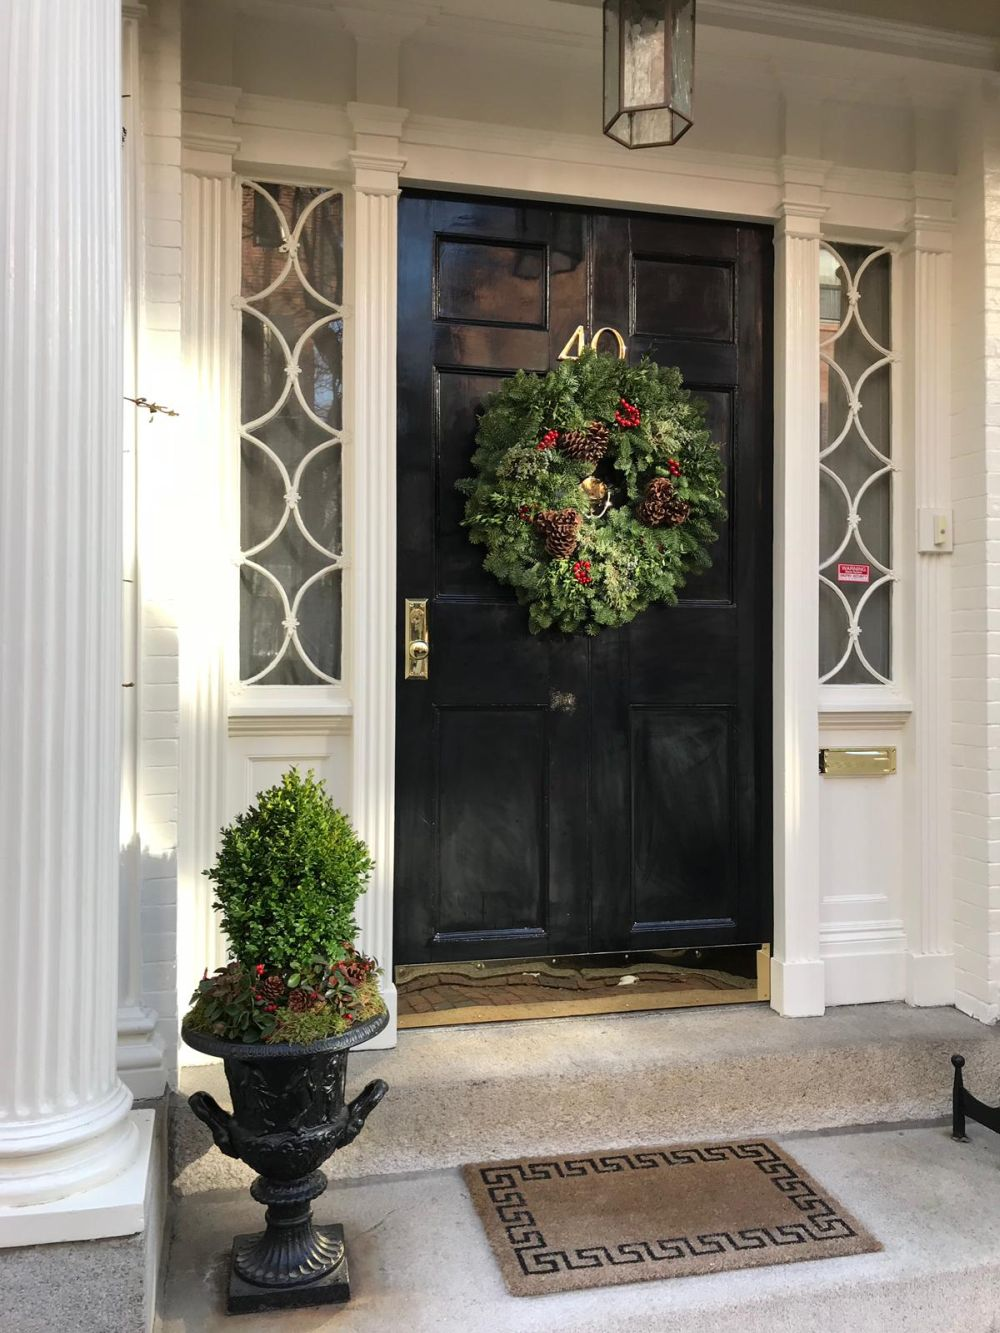 You can decorate your front door wreath with pinecones, berries and other nature-inspired things for an organic look